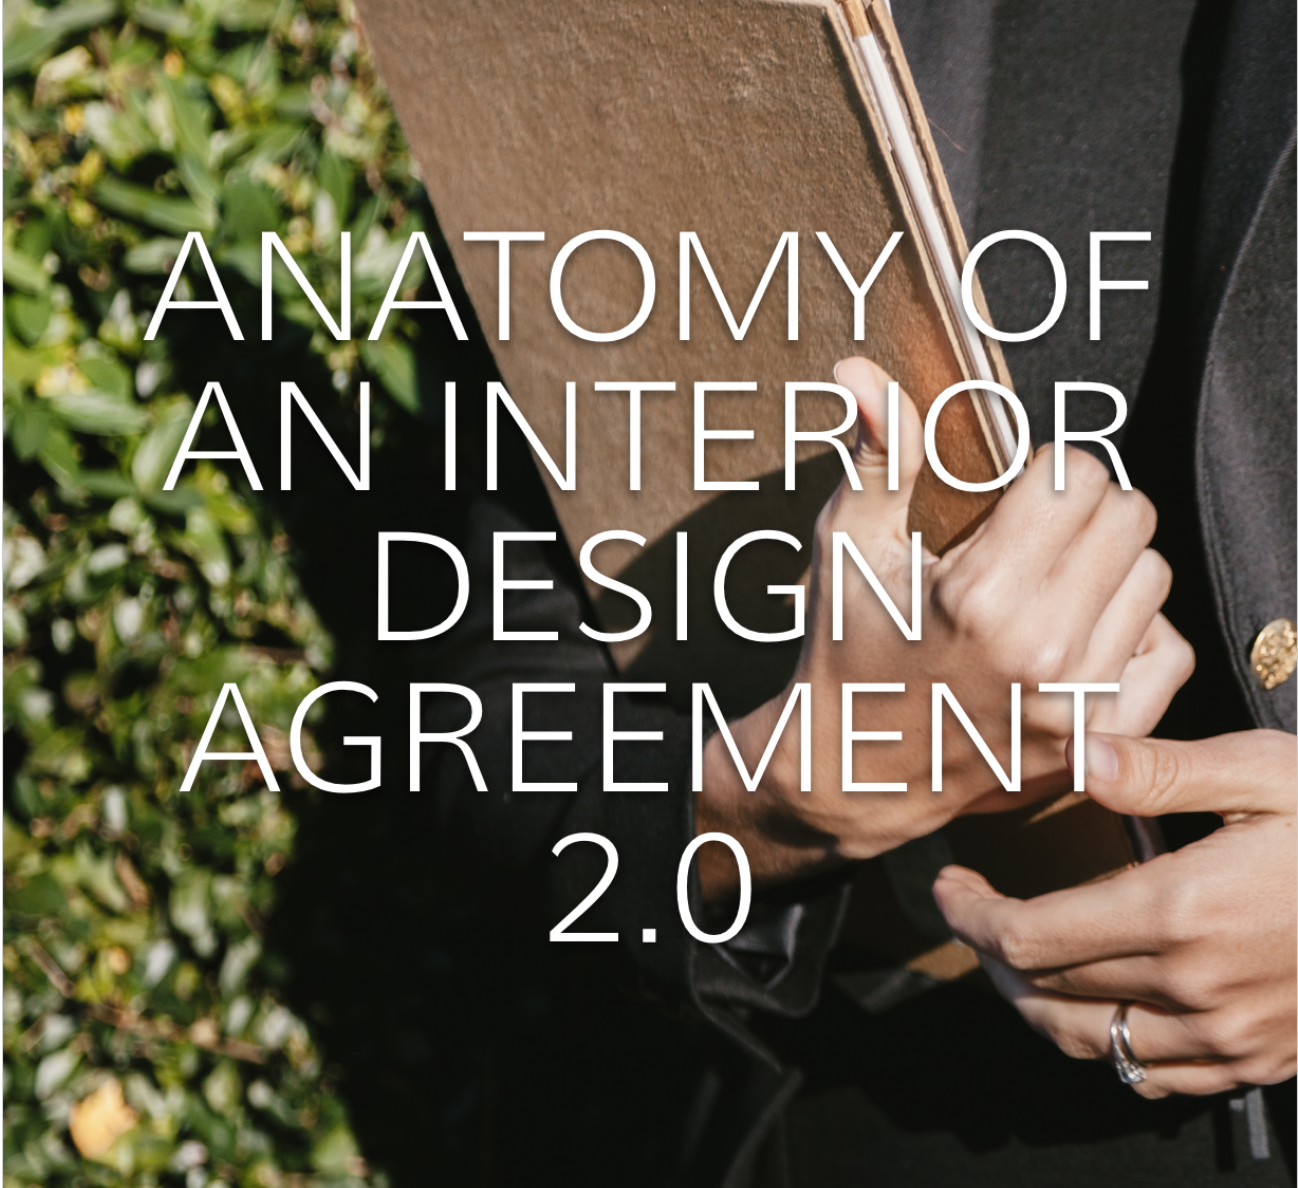 anatomy of interior design agreement 2.png